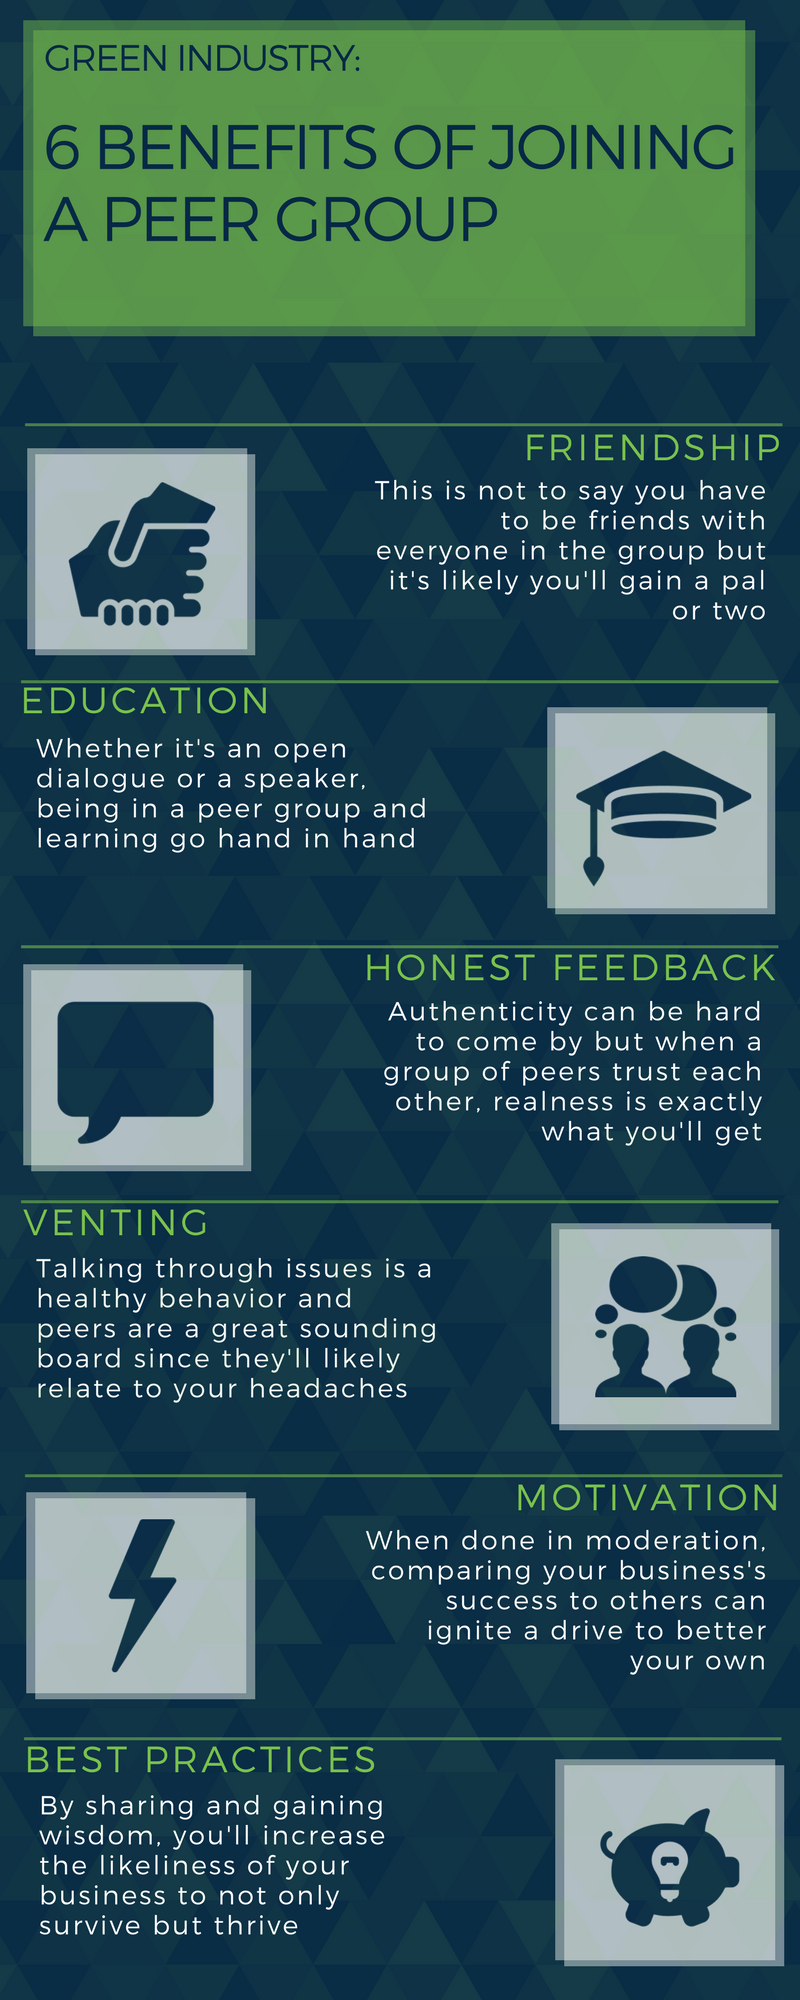 6 Benefits of Joining a Peer Group.png